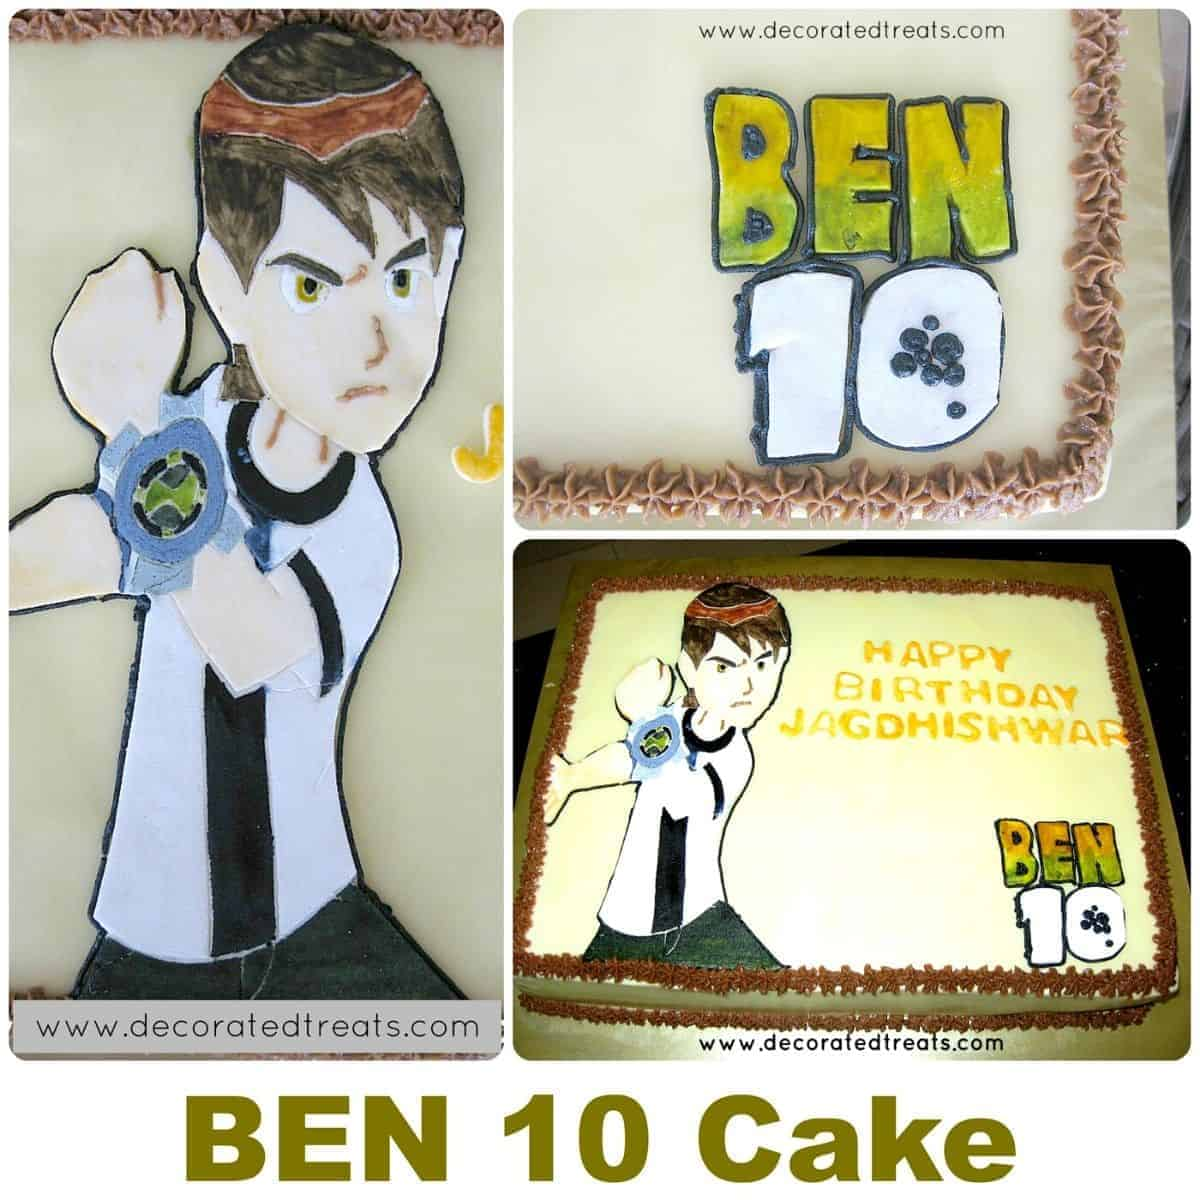 Ben 10 cake poster showing a rectangle cake with a Ben 10 image in fondant